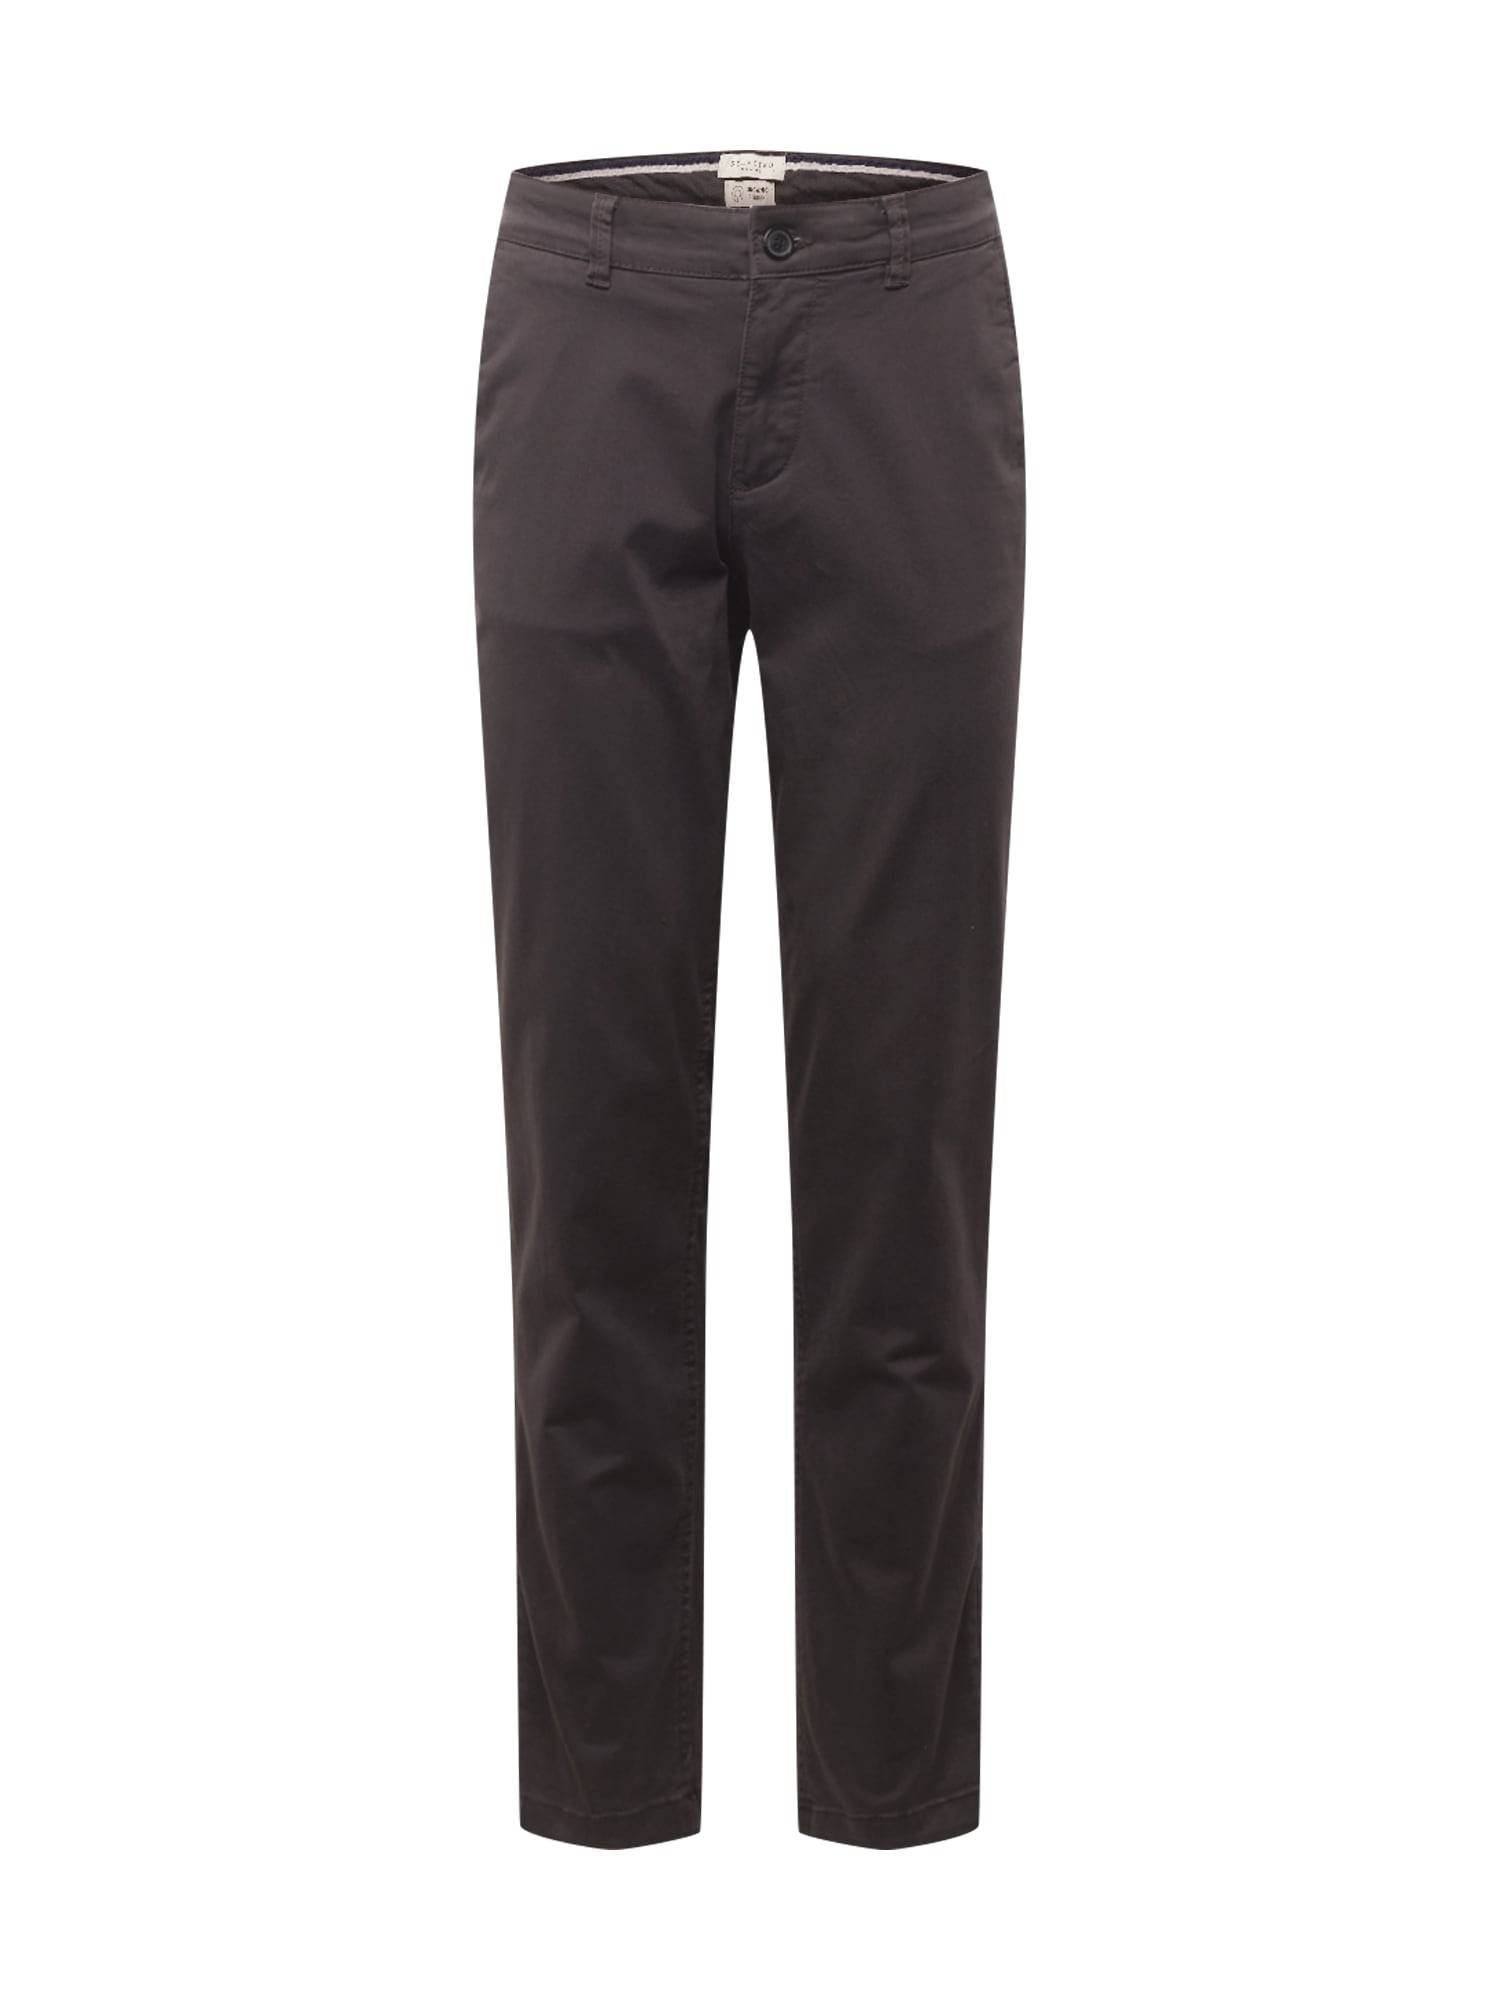 SELECTED HOMME Pantalon chino 'NEW PARIS'  - Gris - Taille: 28 - male